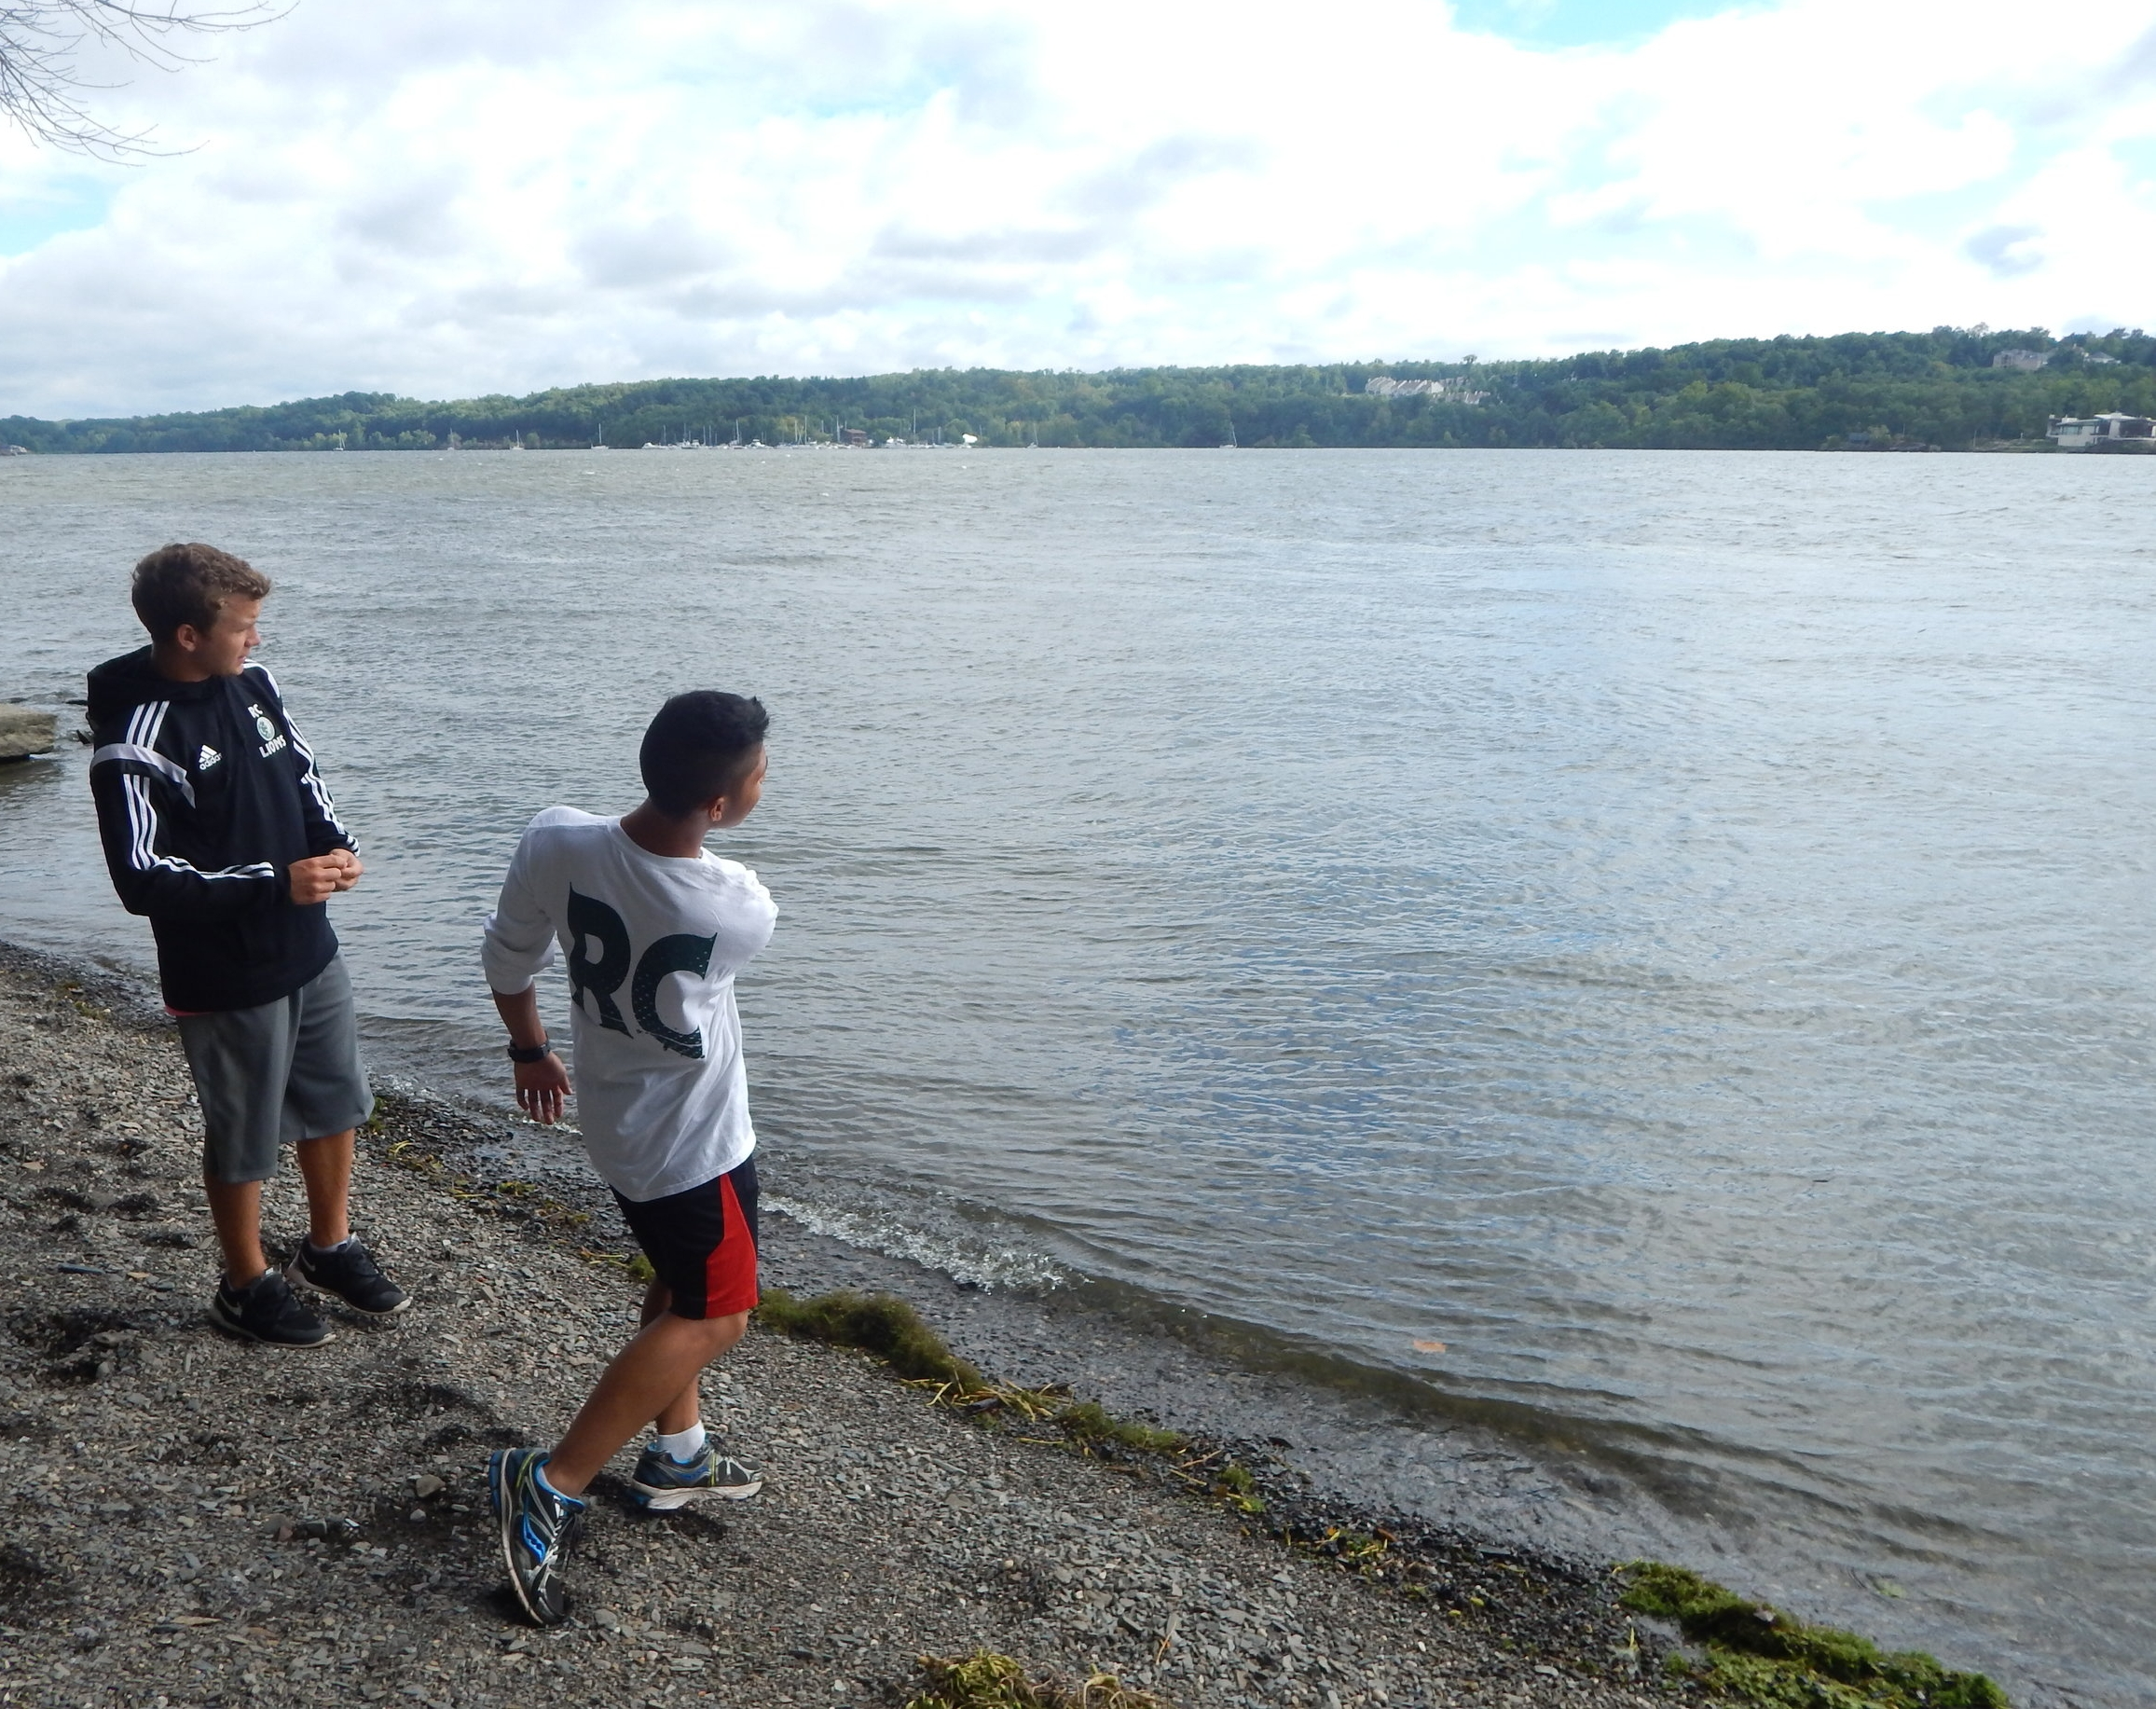 RETREATS - Retreats are offered for all four years.  They are an optional, but very popular part of life at Roselle Catholic.  We use the Marist Brothers Retreat House  in Esopus, NY, right on the Hudson River, a beautiful spot to which our students always want to return.